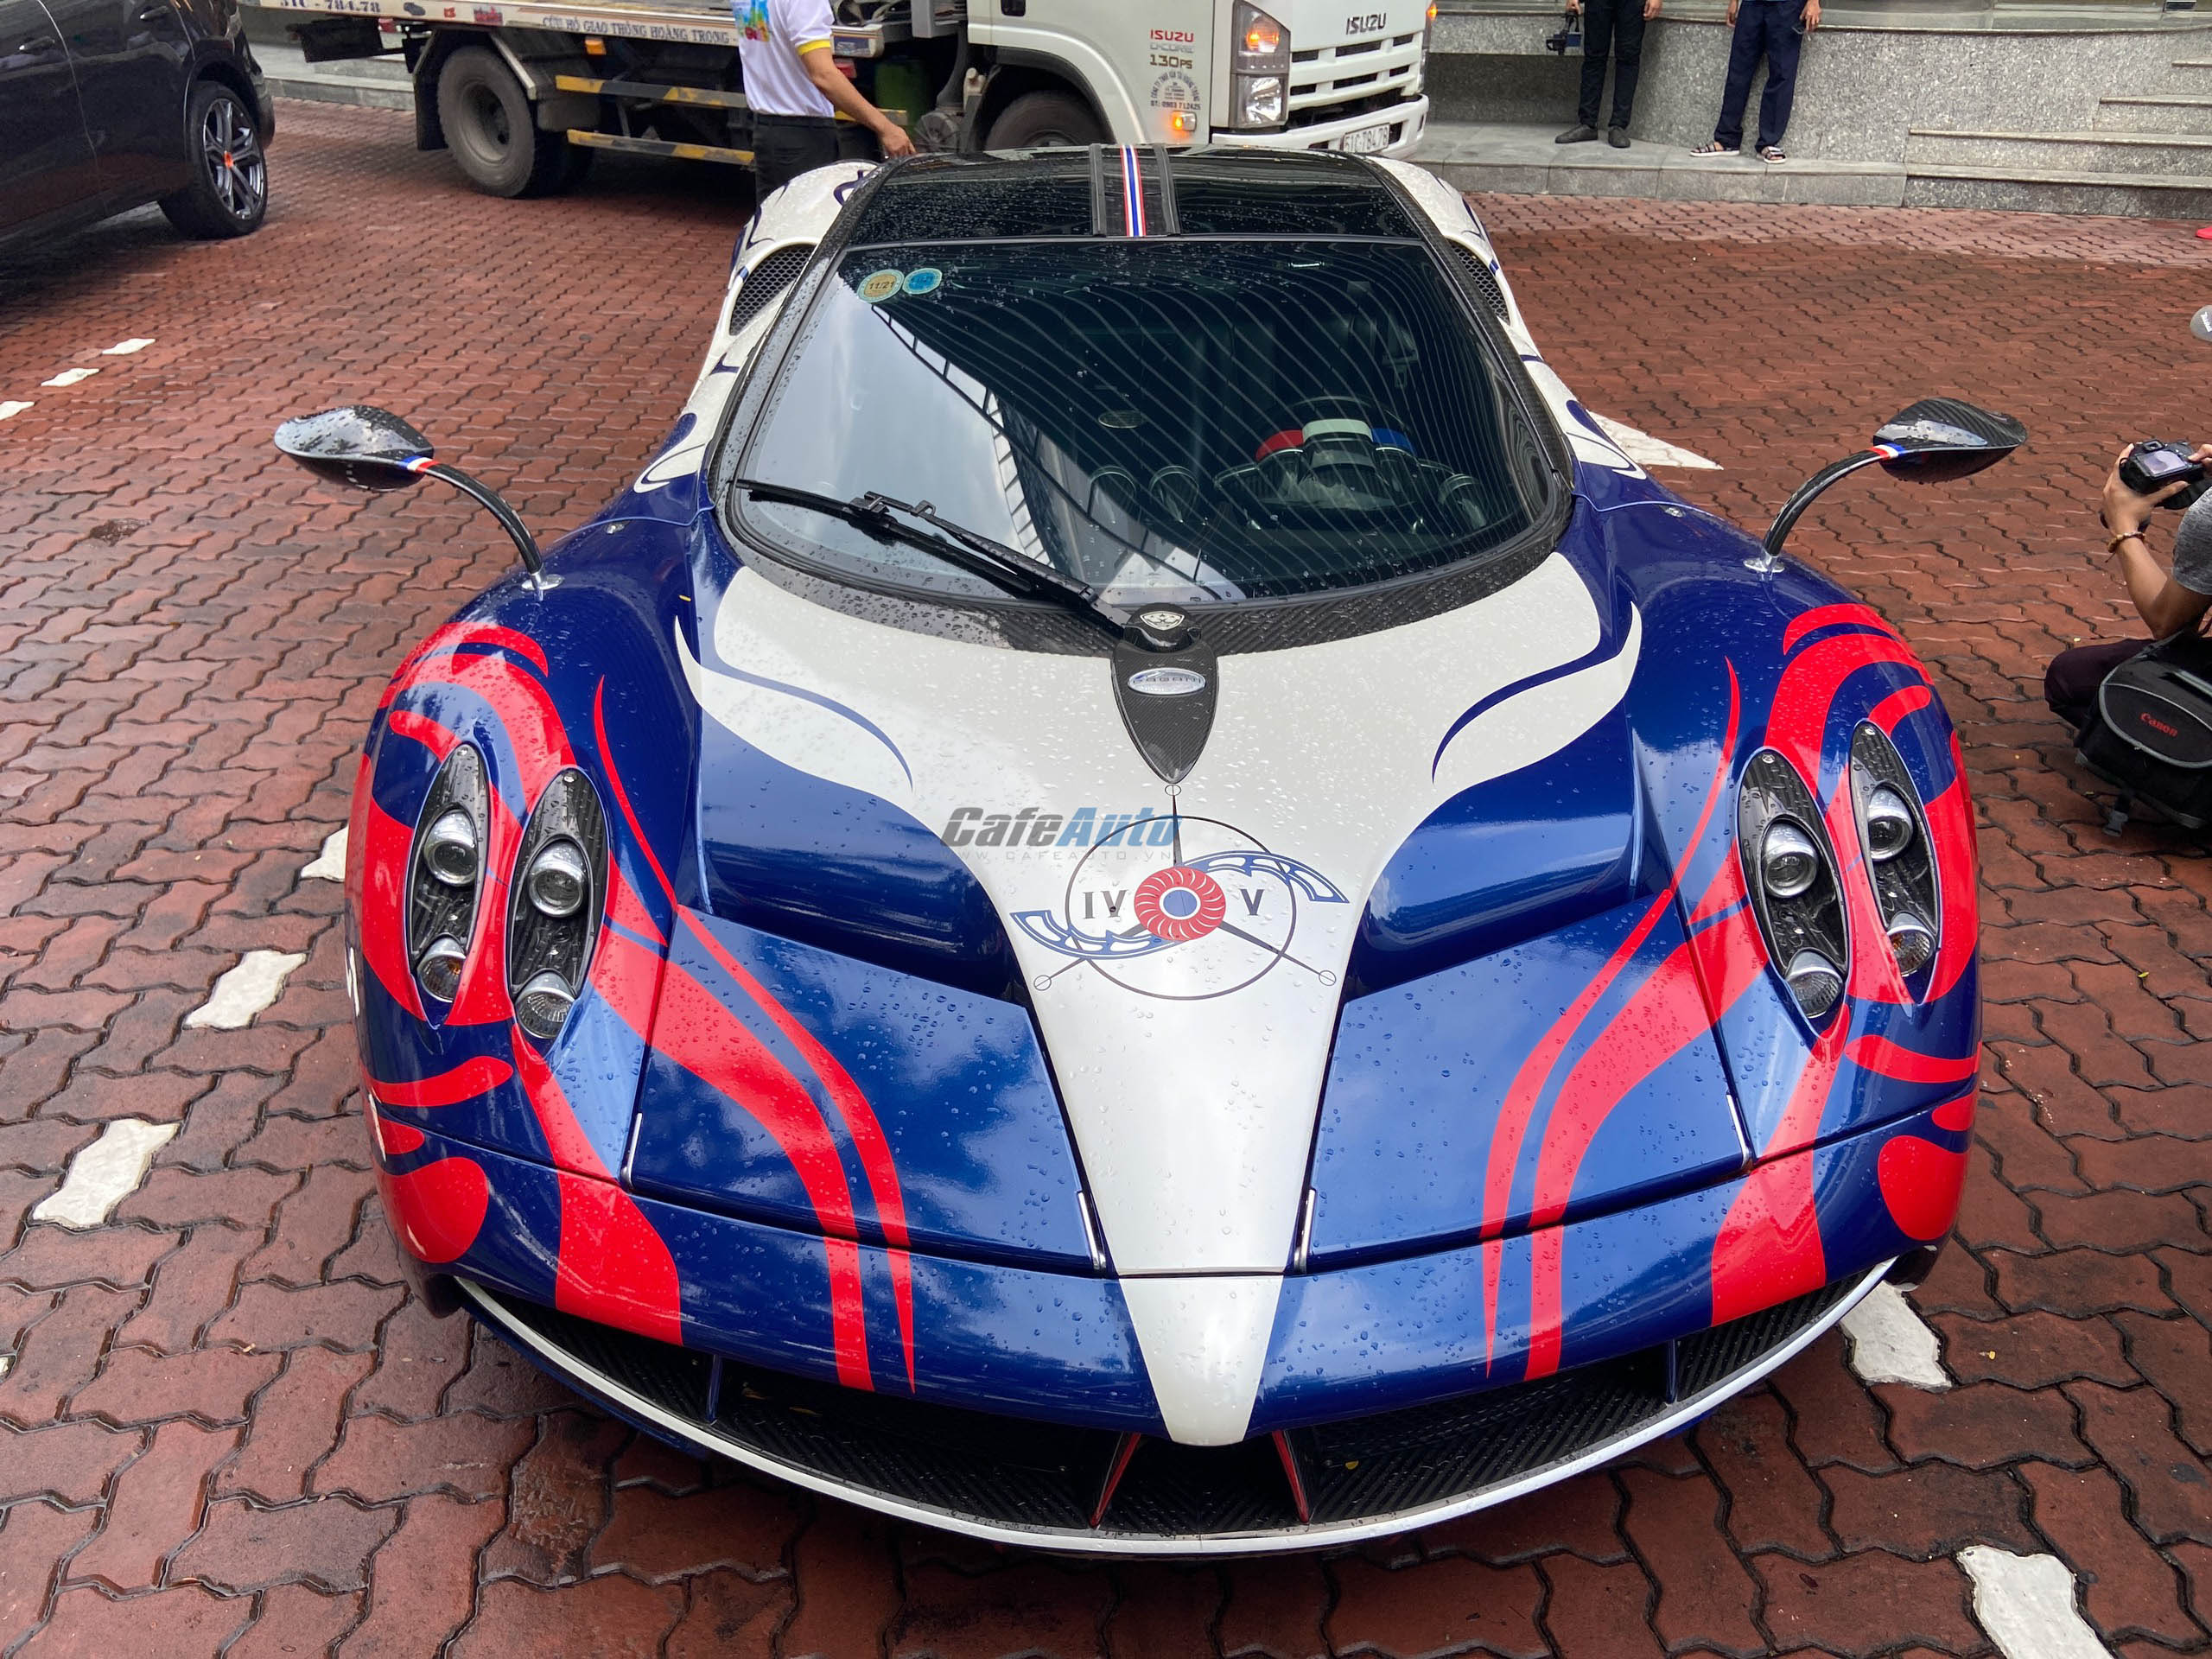 paganihuayra-cafeautovn-21